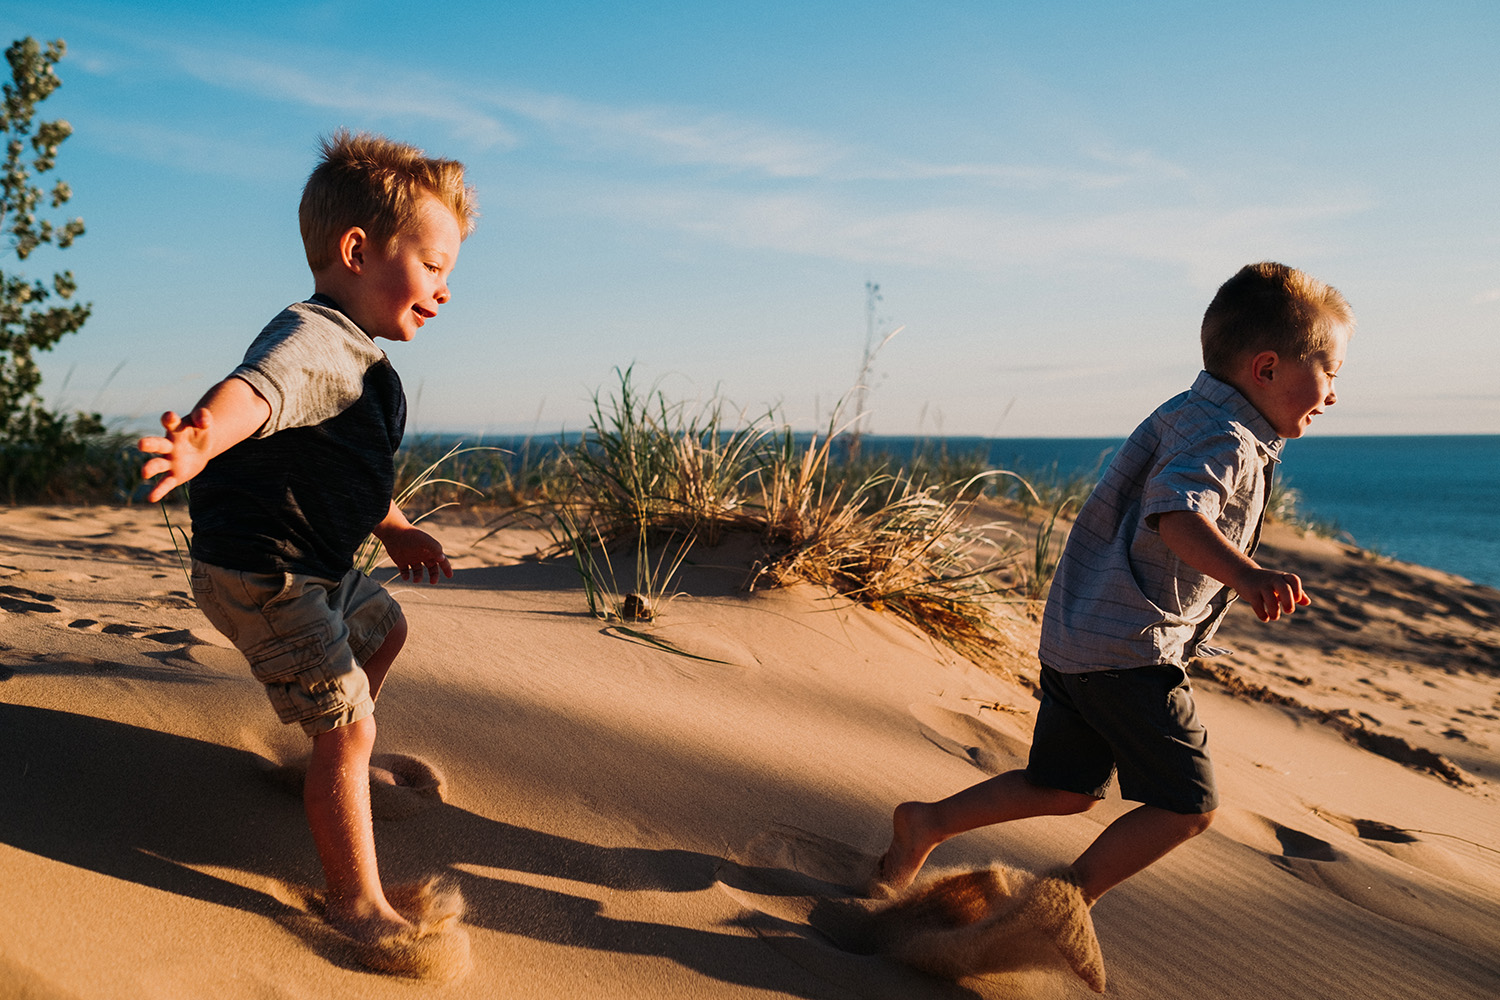 Boys Jumping on the Dunes